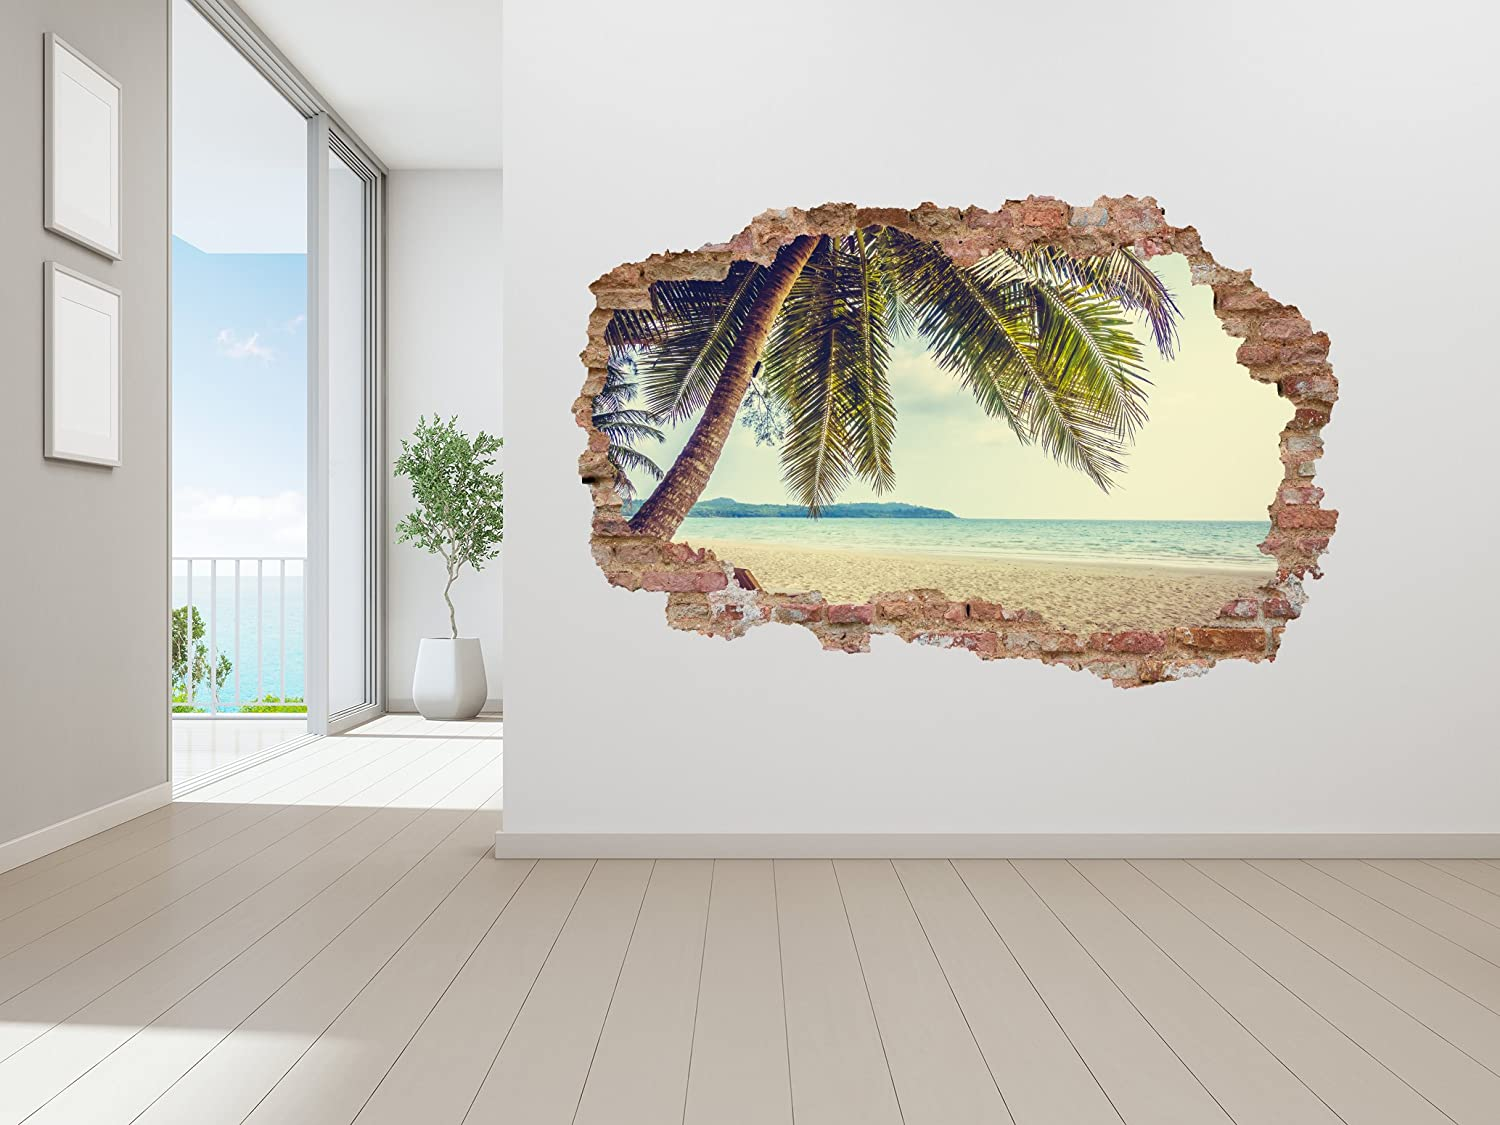 "Ottosdecal Beach Landscape Broken Wall 3D Smashed Bricks Effect Wall Decal Vinyl Sticker for Home Interior Decoration Doors Laptop, Window, Mirror, Car (55"" x 36"")"